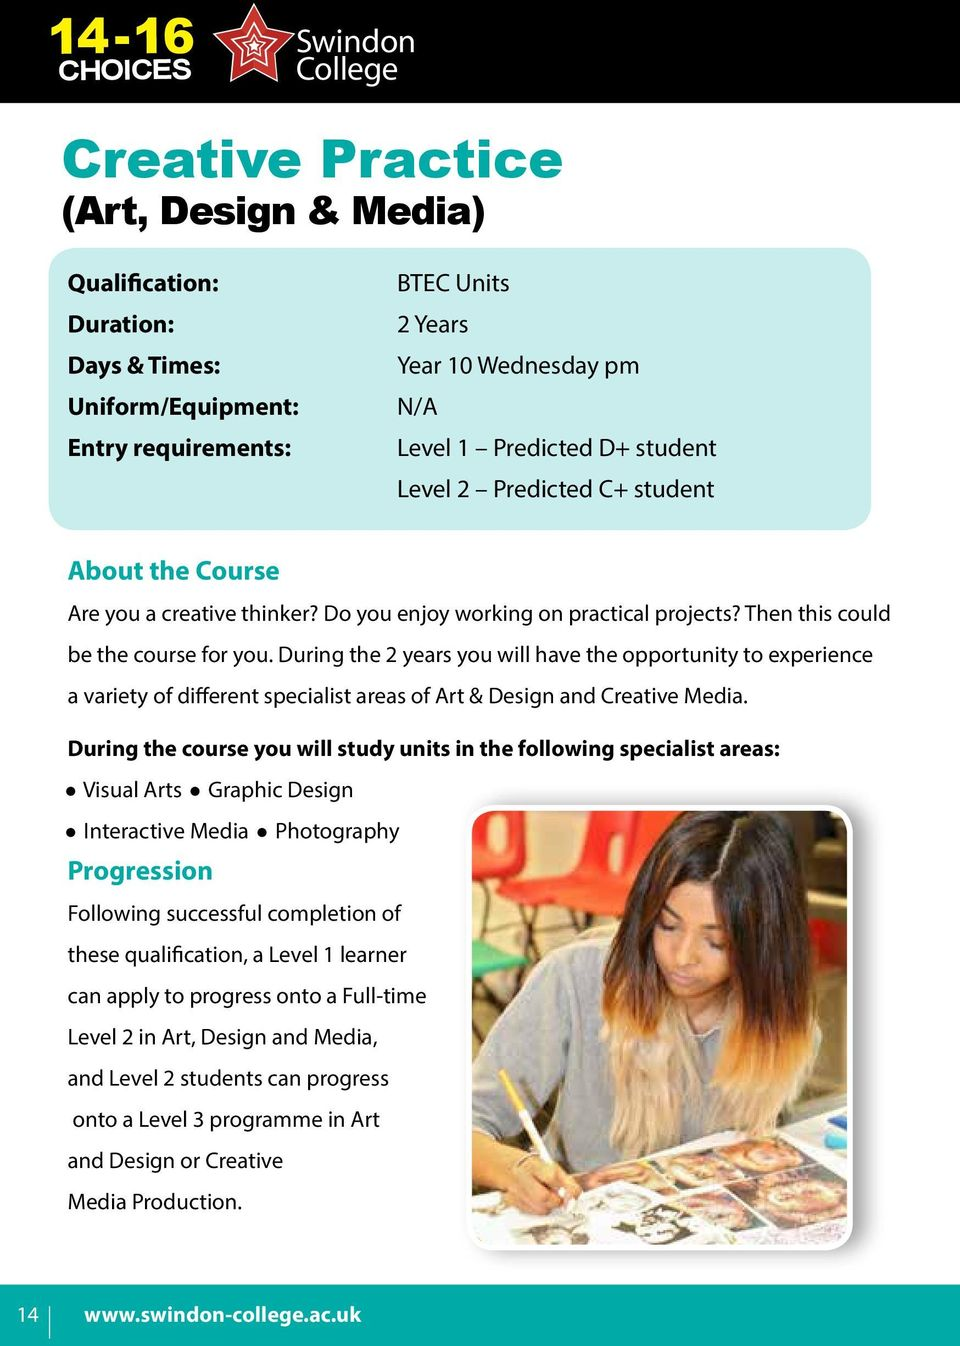 During the 2 years you will have the opportunity to experience a variety of different specialist areas of Art & Design and Creative Media.